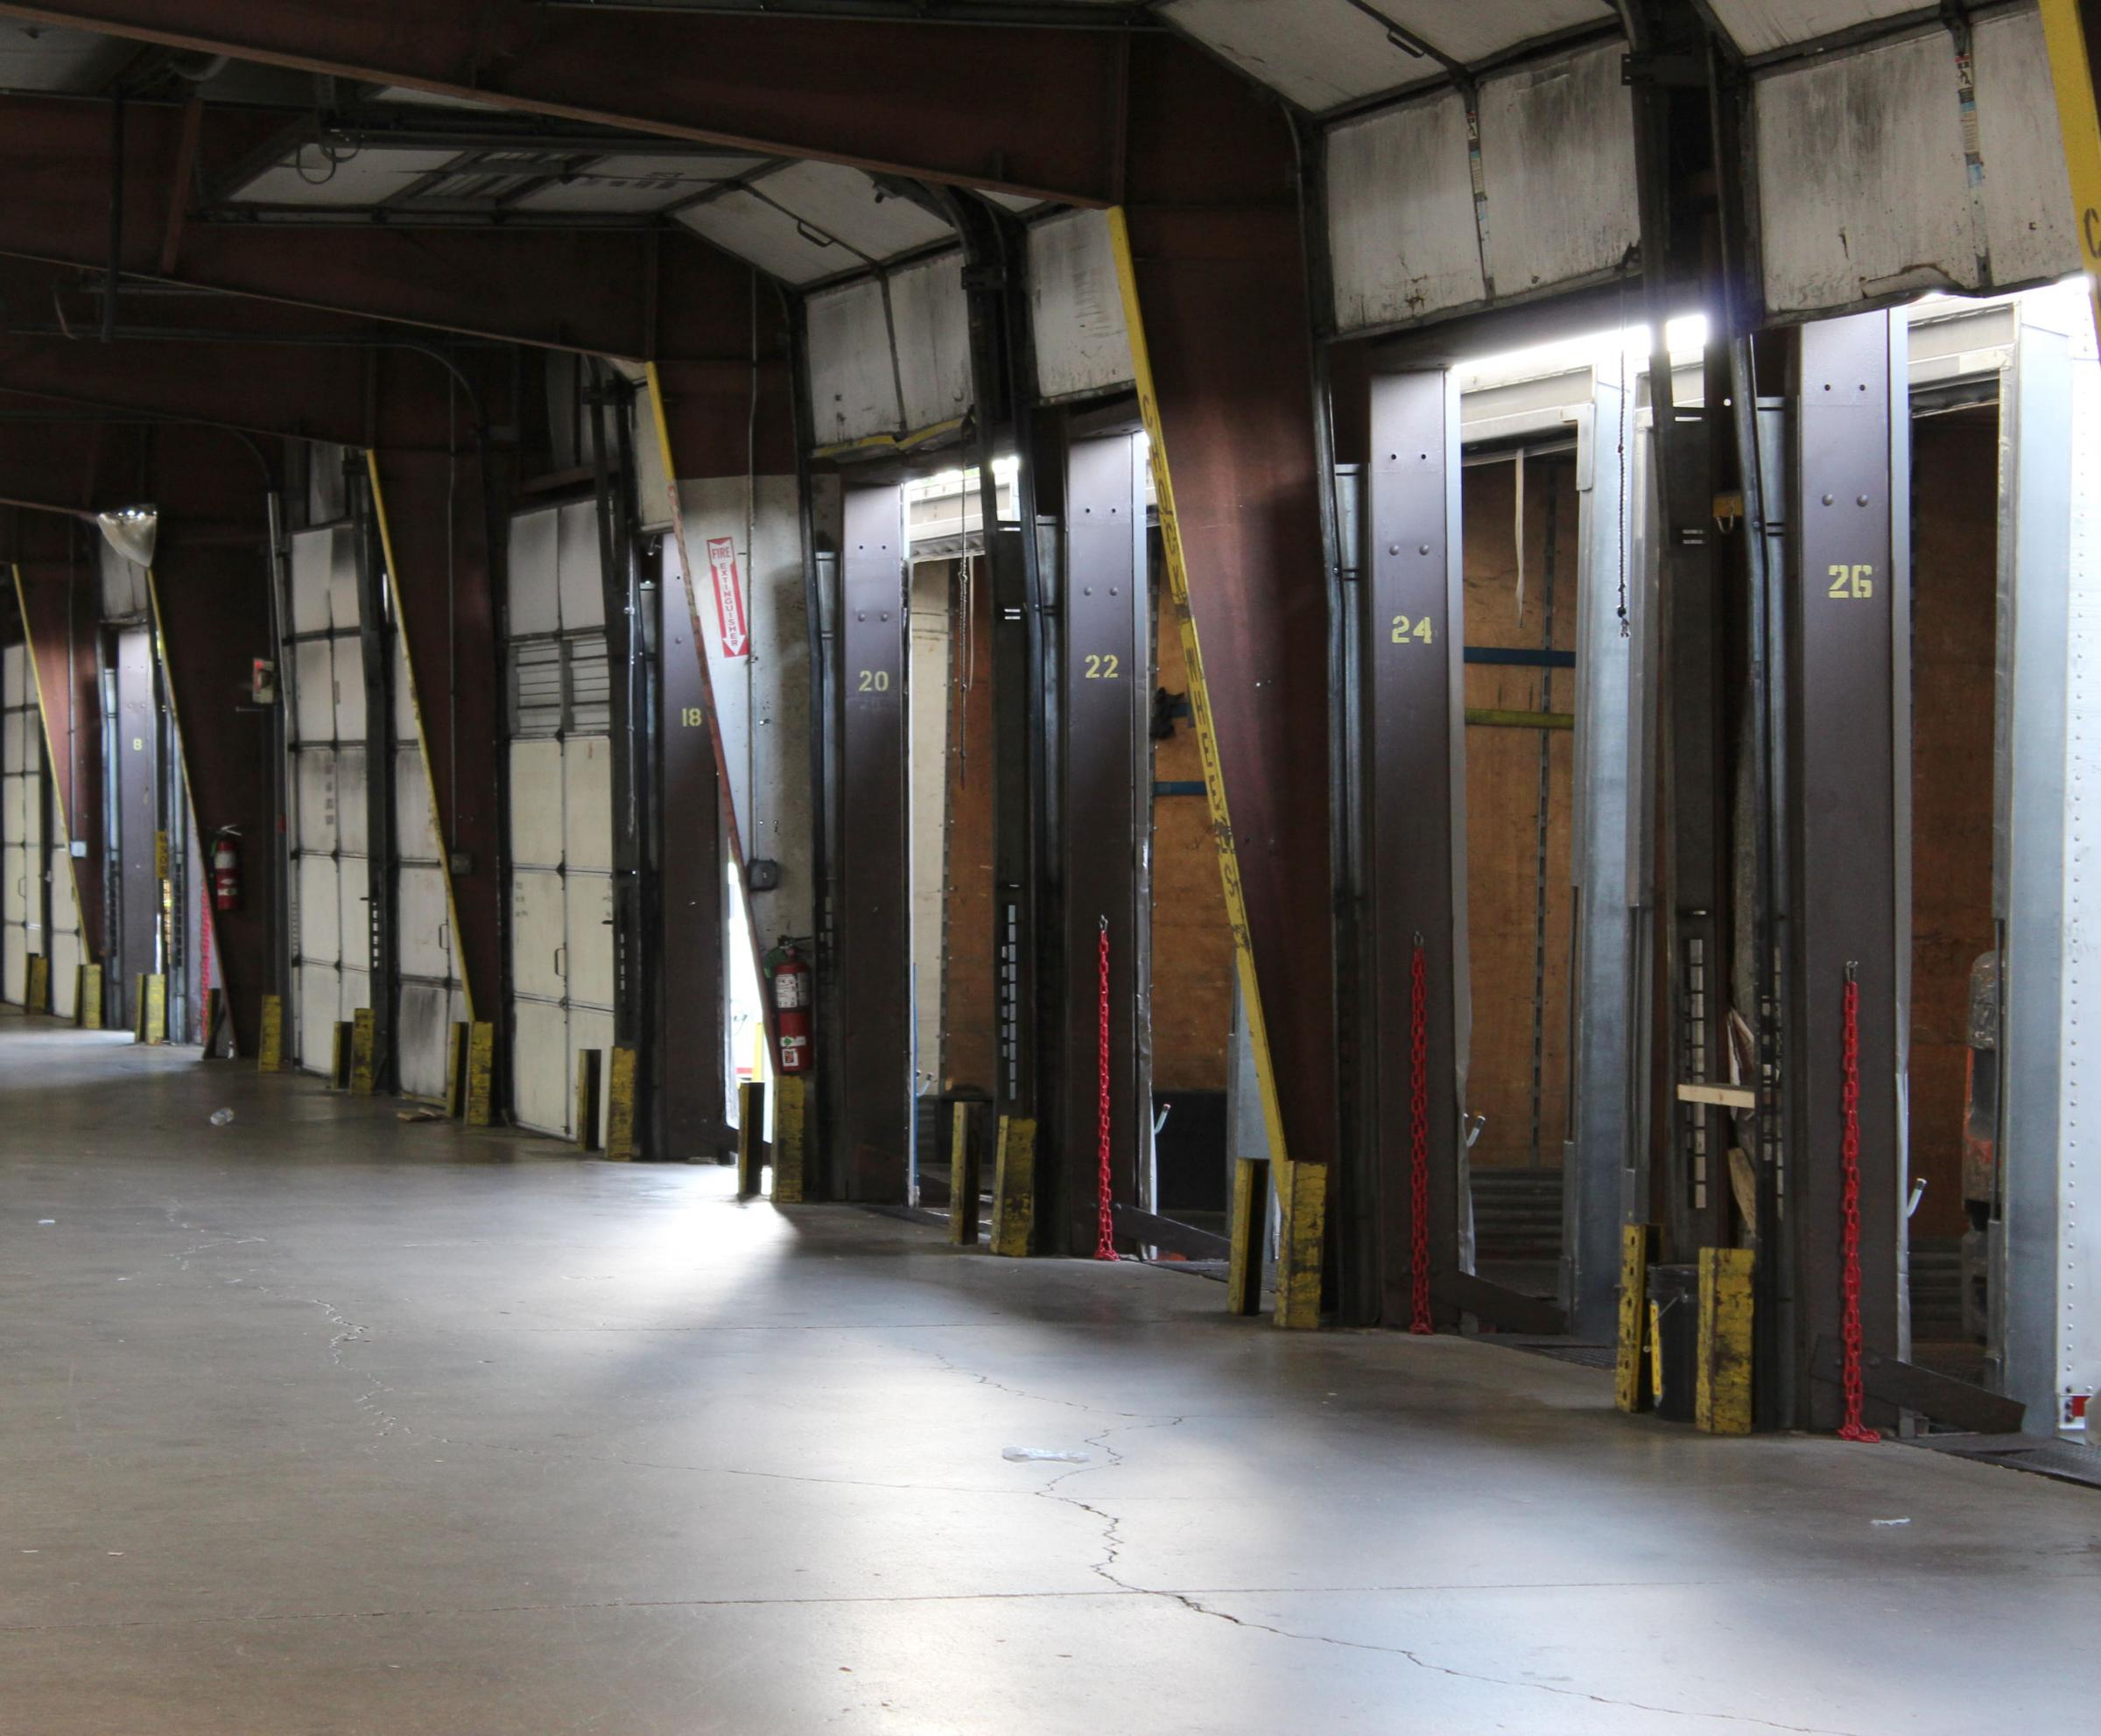 Free up space in your building with a consolidation and dock sweep of your freight